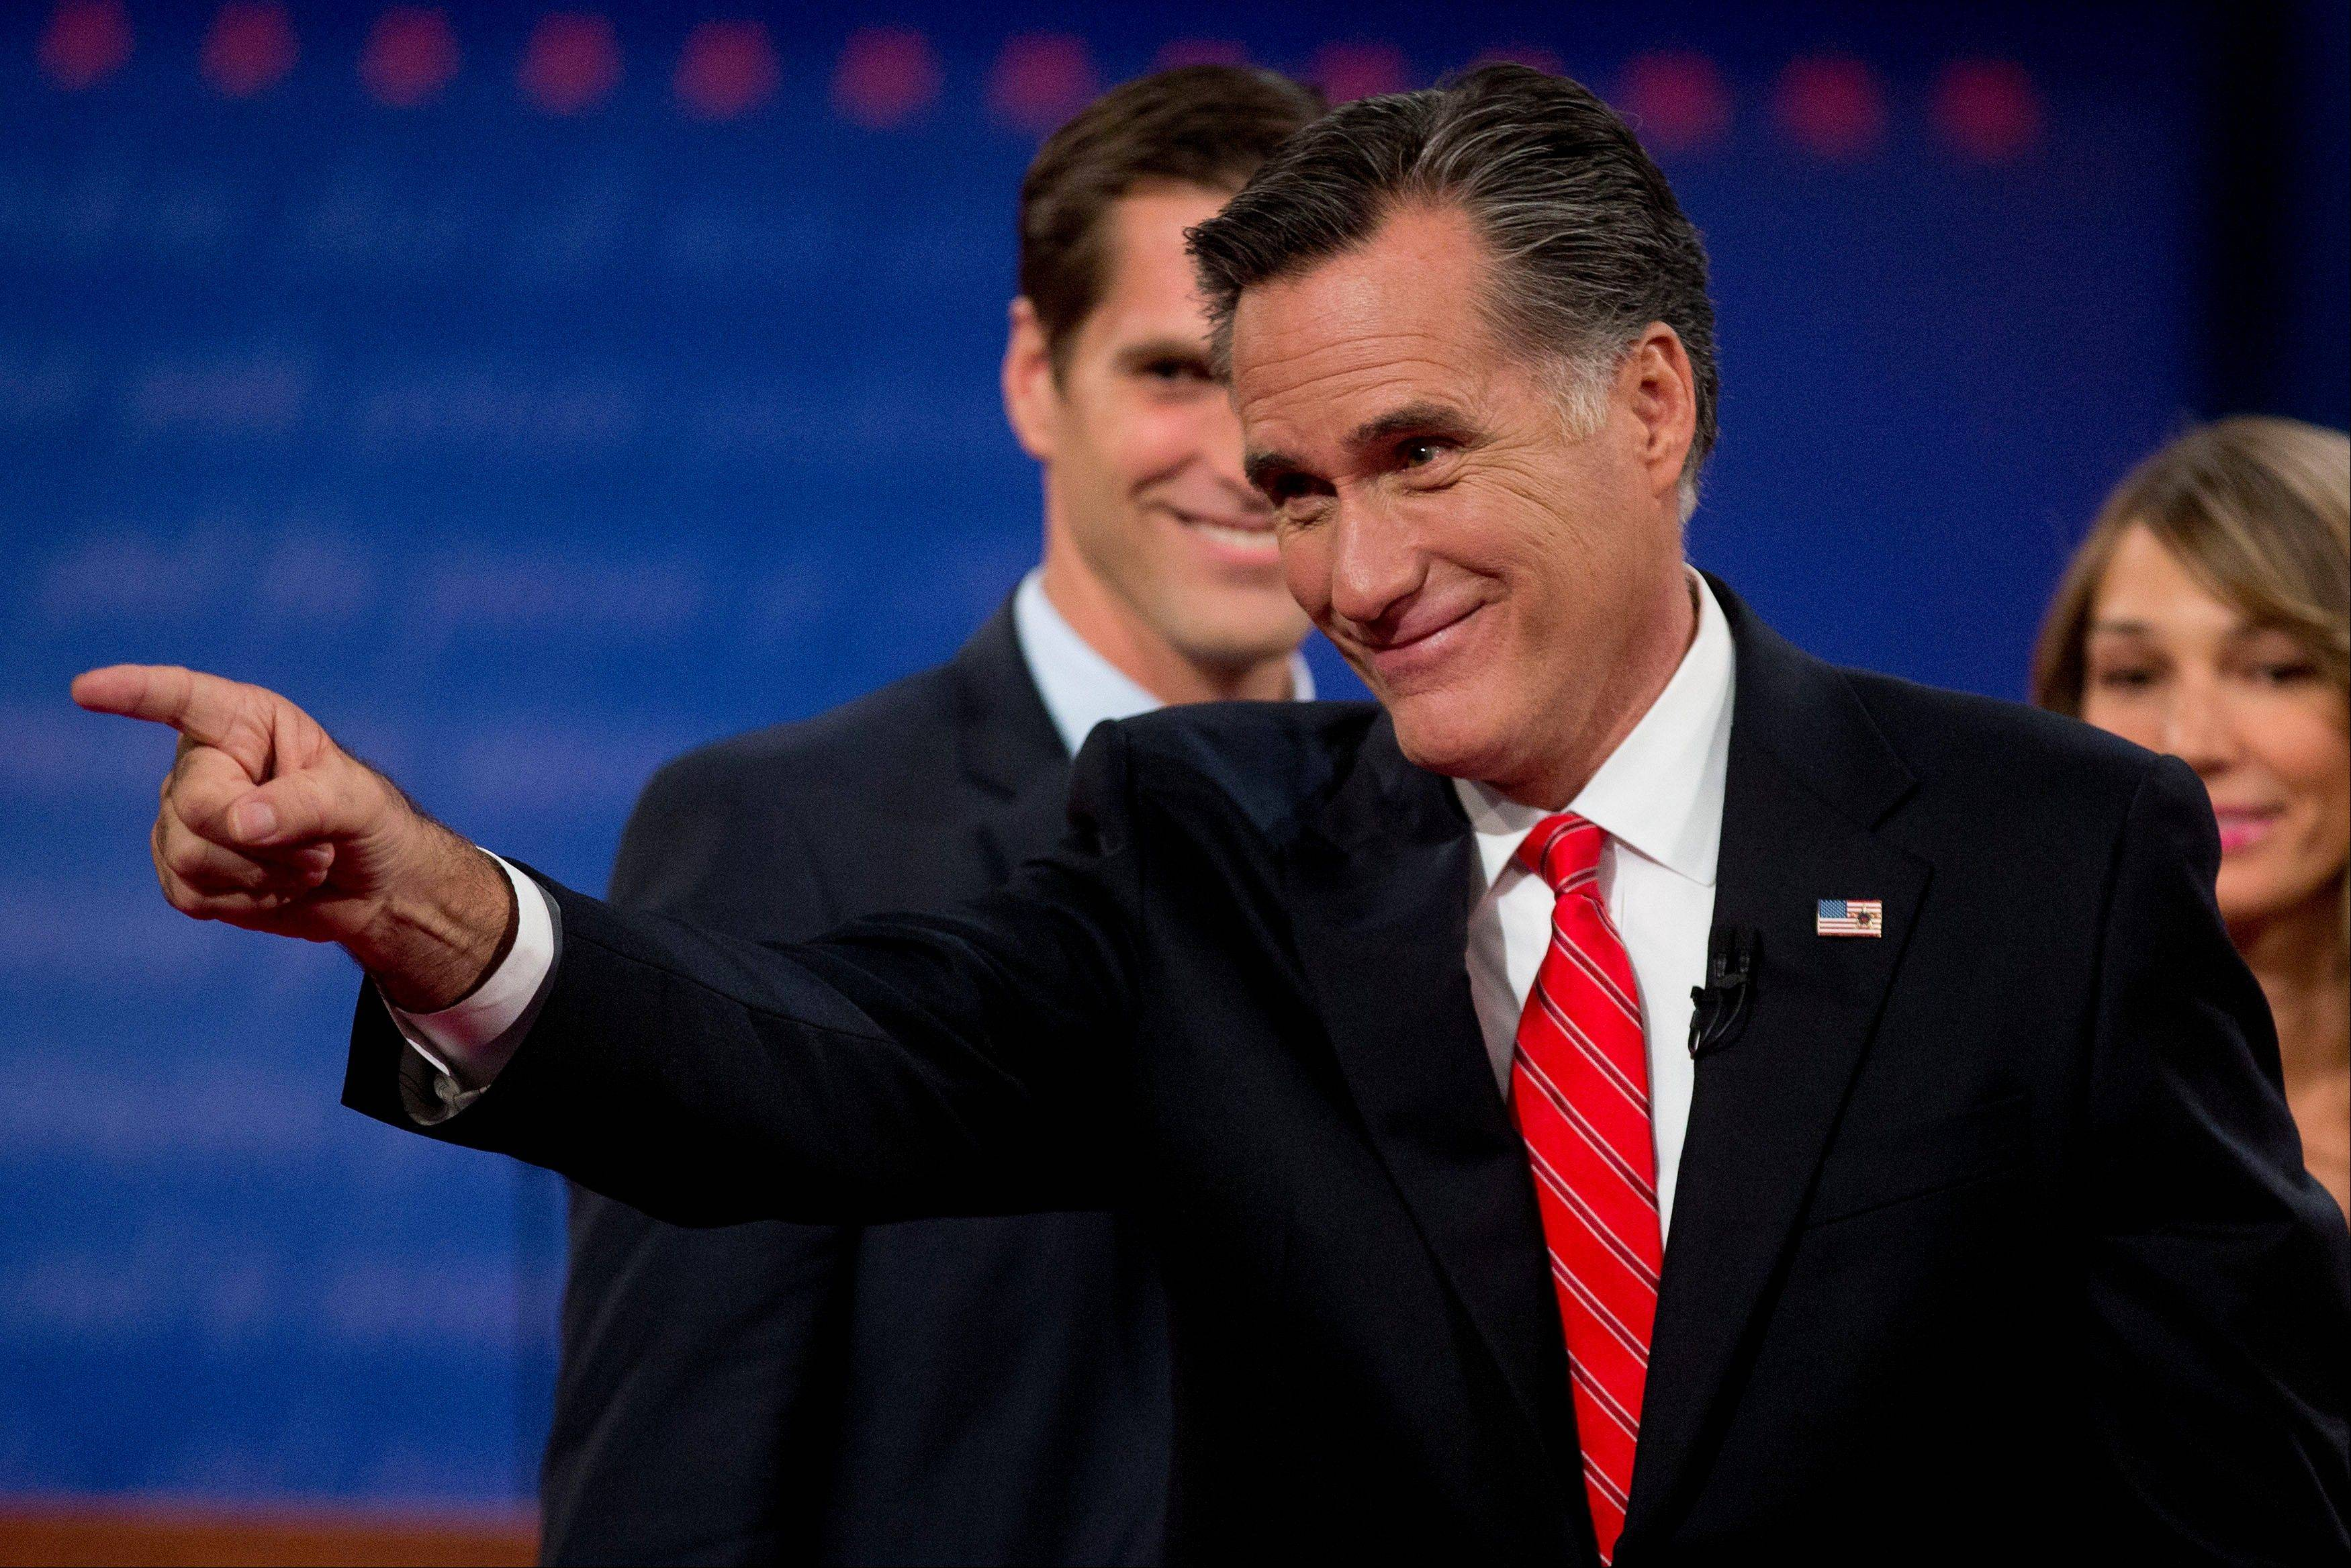 Post-debate: Romney basks, Obama challenges